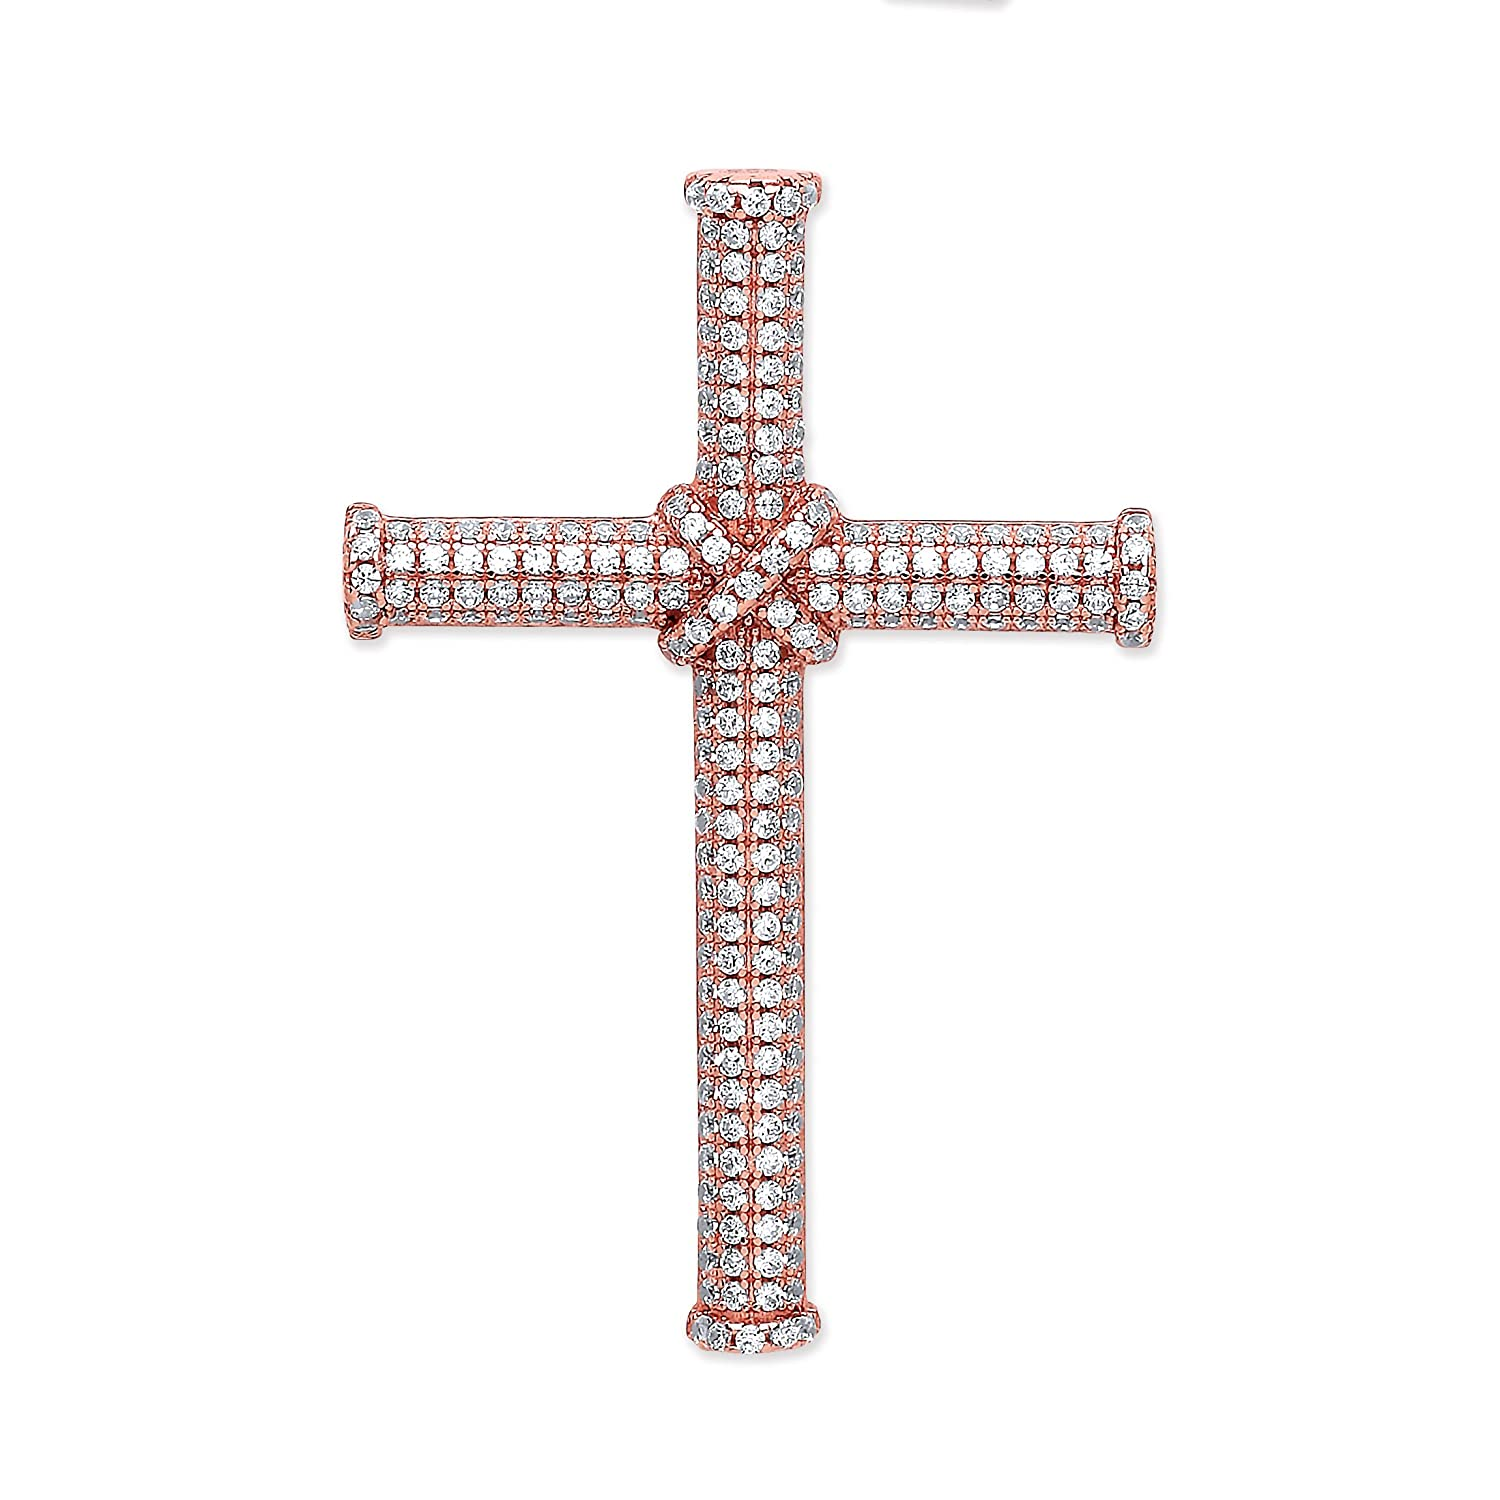 JQS- Rose Gold on 925 Sterling Silver Cz Micro Pave Set Crucifix Cross Pendant 30x25mm: With 18' Curb Chain JQS-SCX0051-18